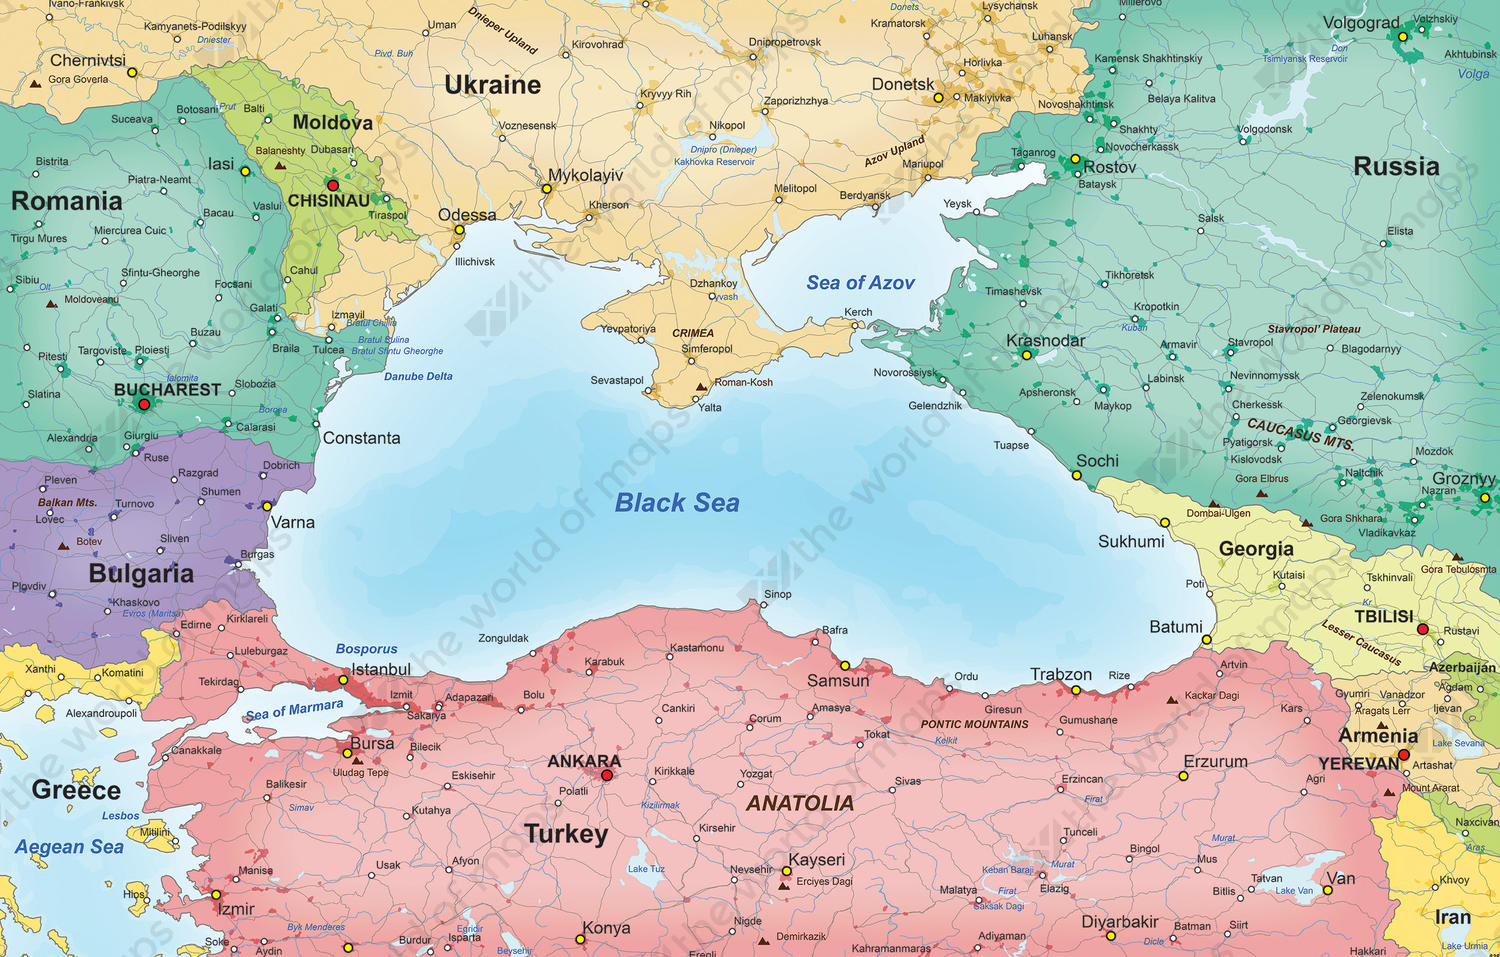 Digital Map Countries around the Black Sea 838 The World of Mapscom